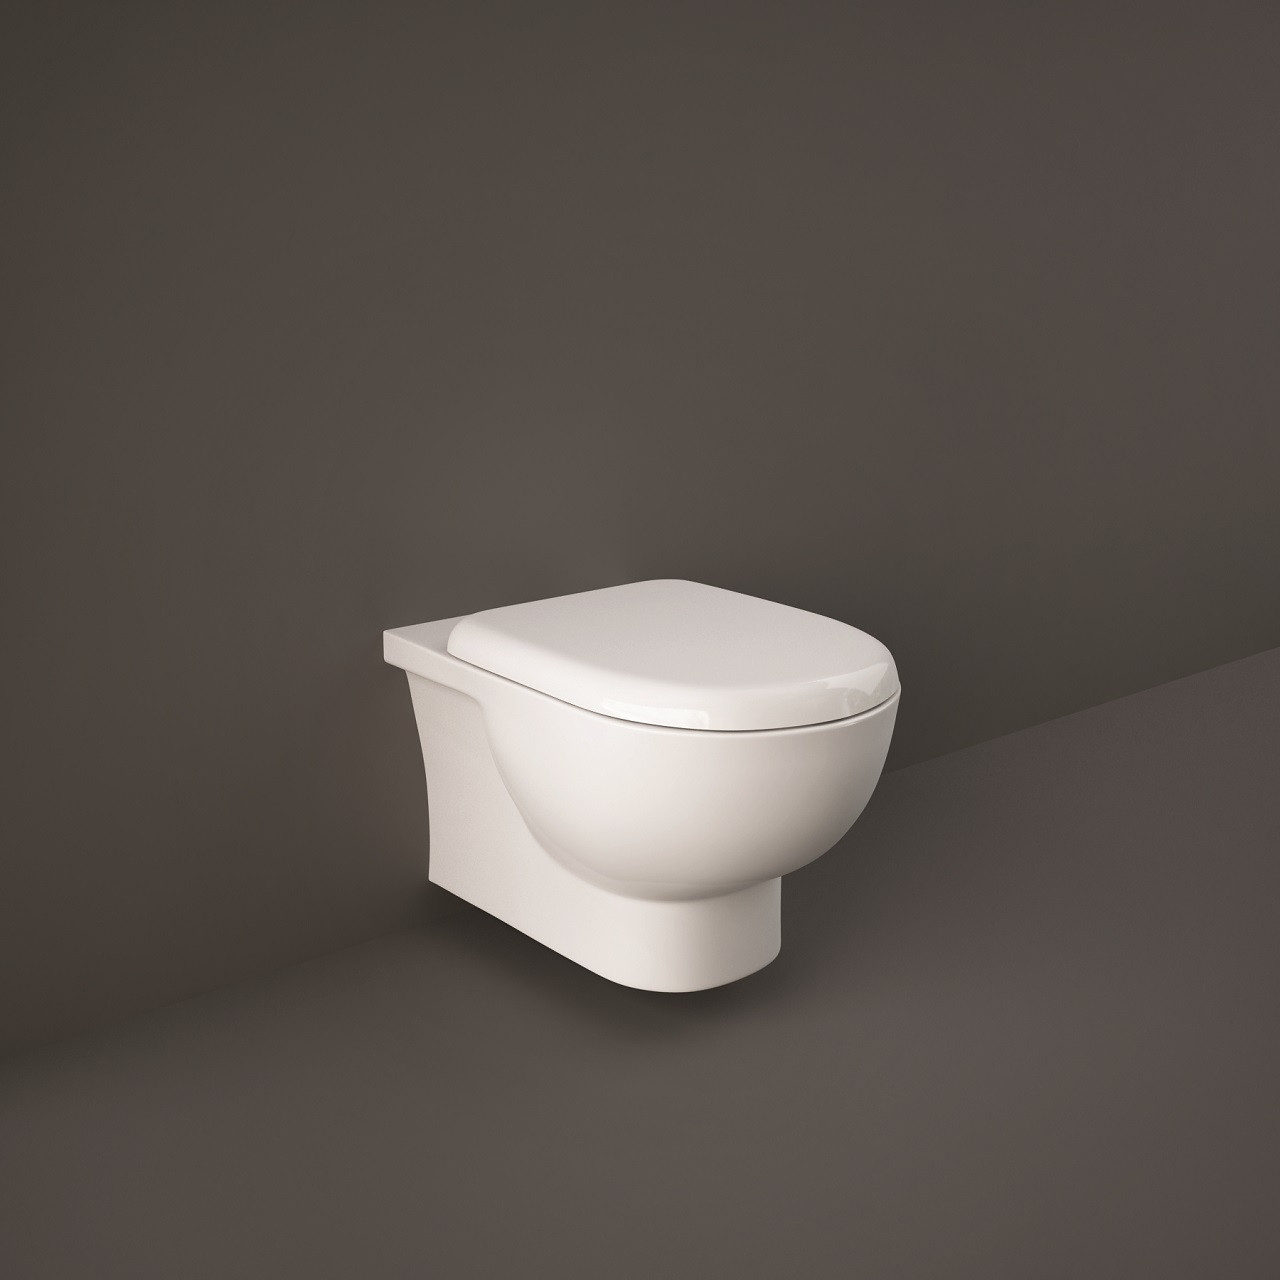 Monza Rimless Wall Hung Toilet Pan With Soft Close Seat